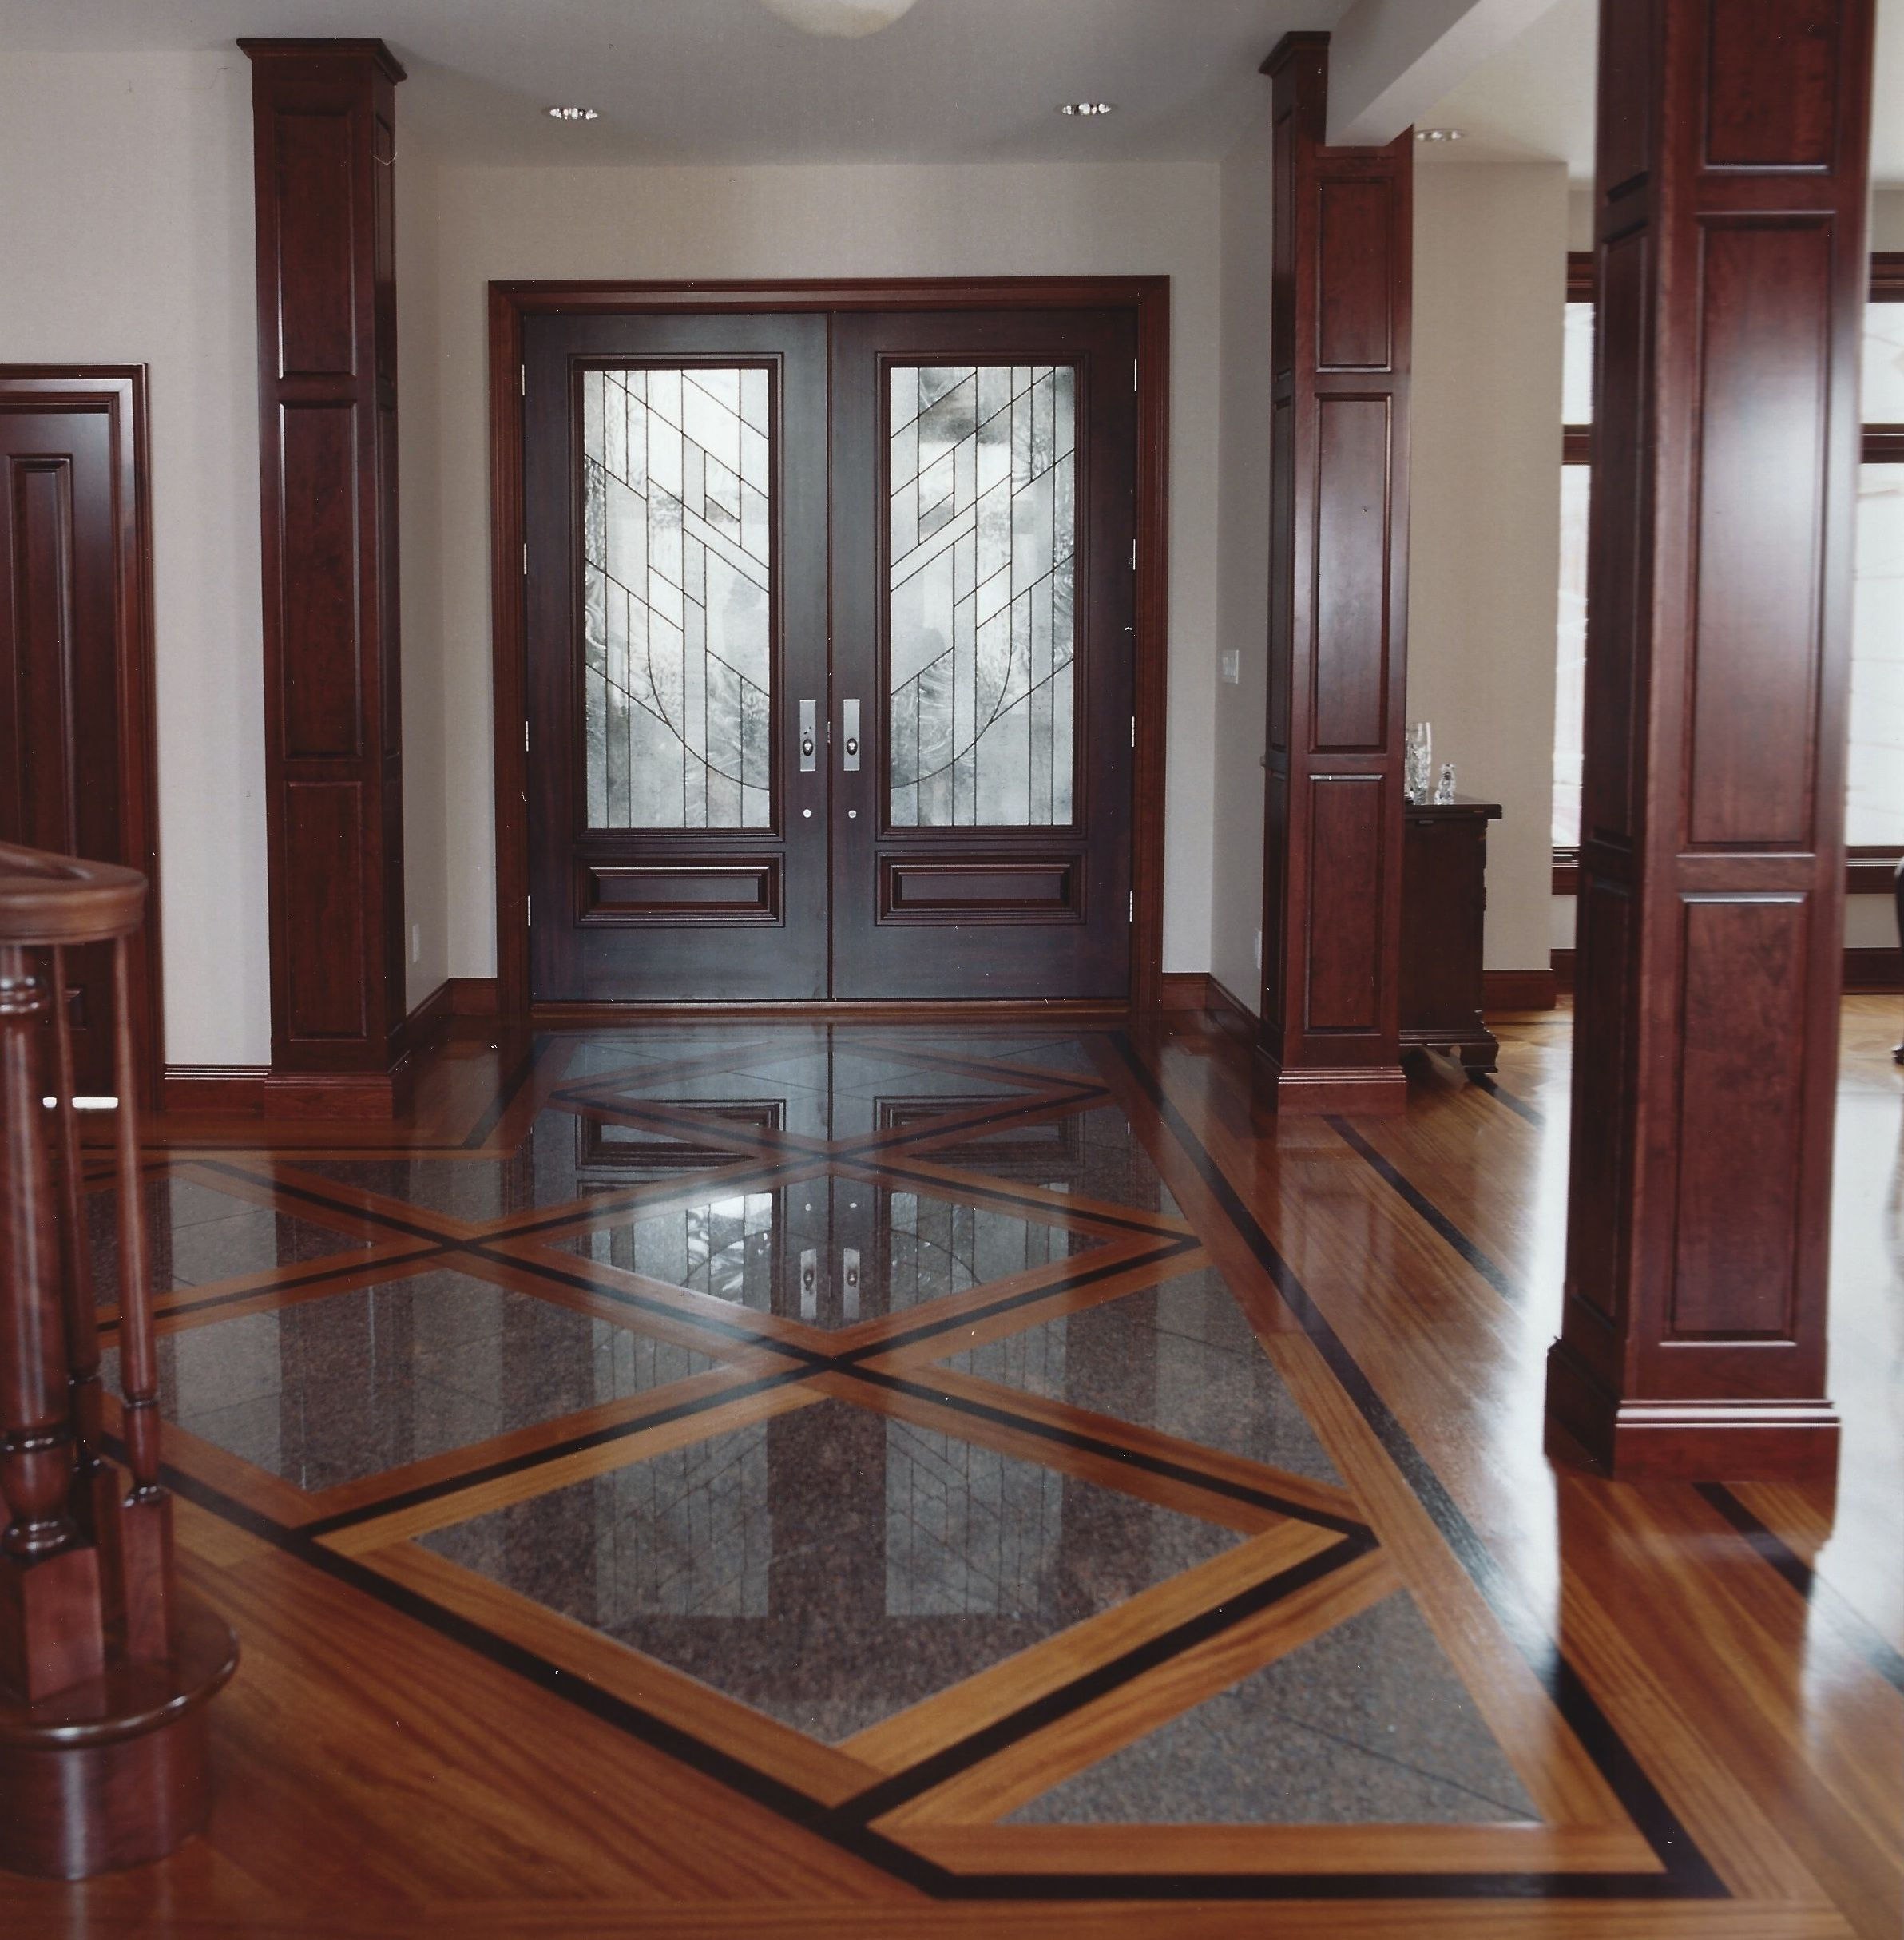 Legendary Hardwood Floors Parquet Jatoba Wenge Inlaid Granite Entry 2000 Floor Of Year Terre Haute In Pisos Para Sala Comedor Suelos Rusticos Lozas De Piso